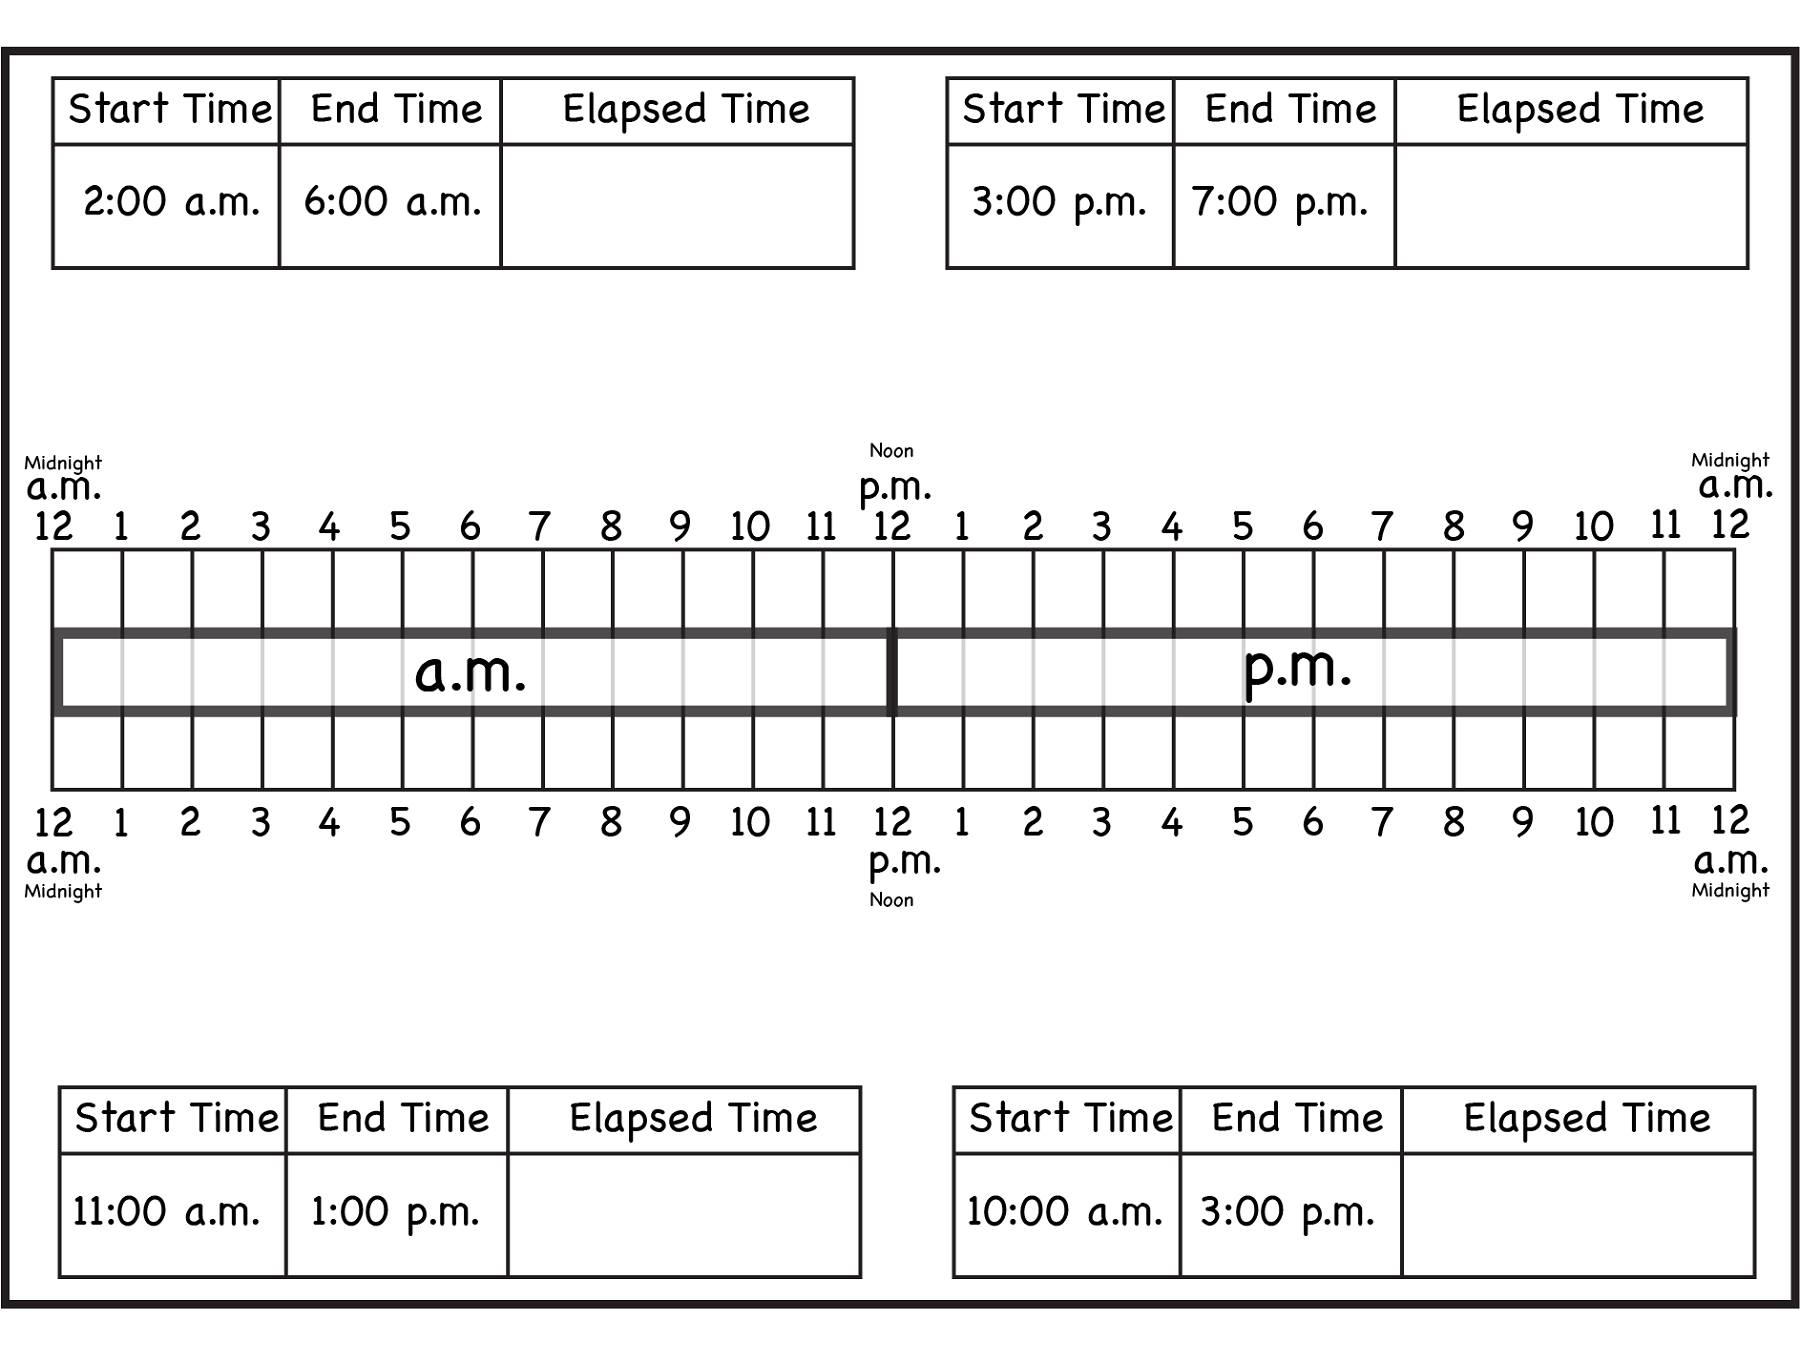 worksheet Elapsed Time Worksheets 4th Grade elapsed time ruler to print activity shelter kids worksheets clock face draw the hands time